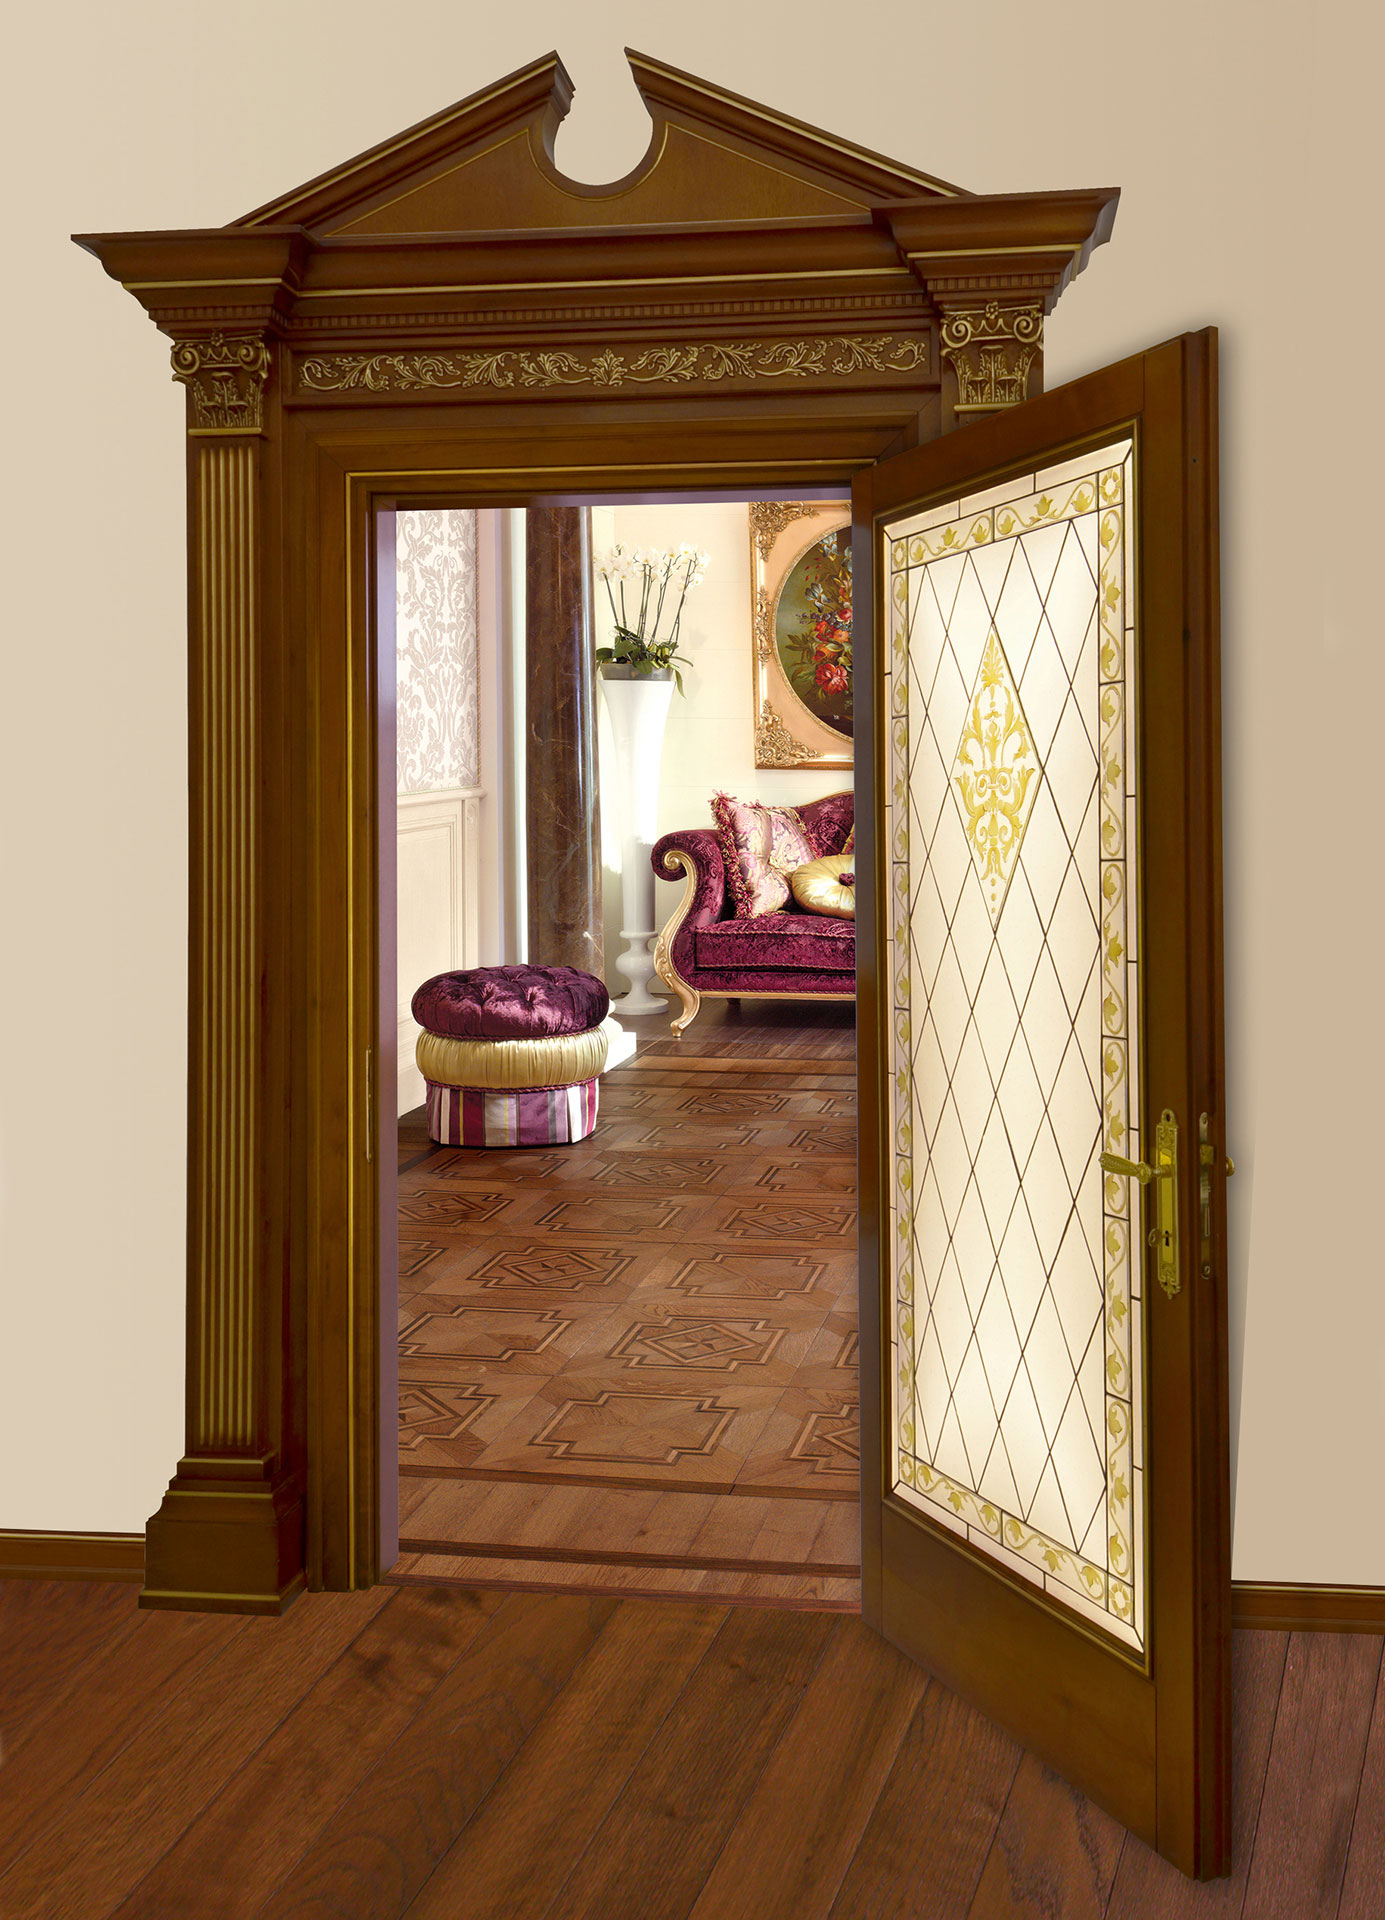 Faoma classic-style glass and wood door